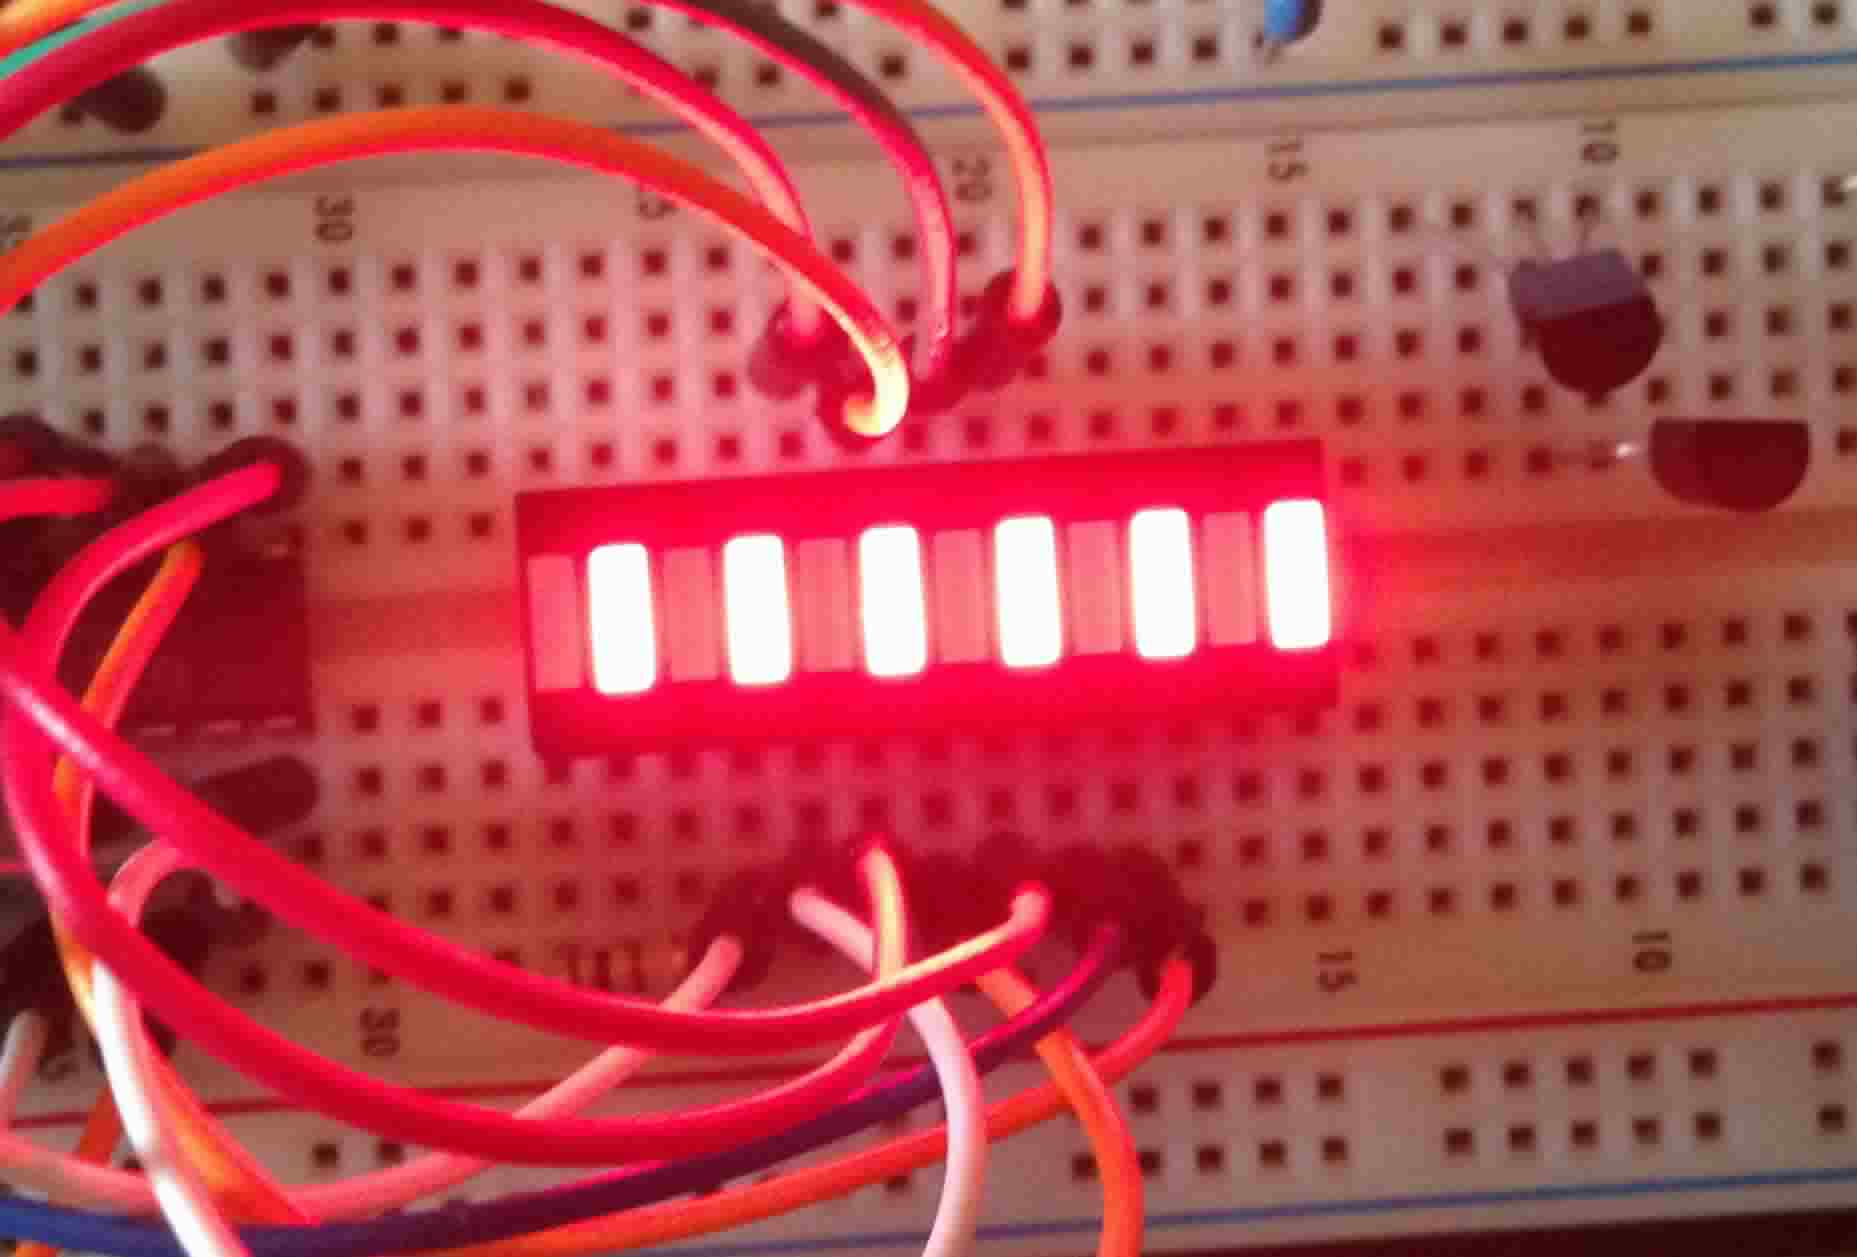 Led Bar Graph With Arduino And Shift Registers Cupid Controls So Now The Schematic Of Circuit Will Look Like Alternating Leds Show That Our Segment Control Multiple Anodes Is Workign As Advertised